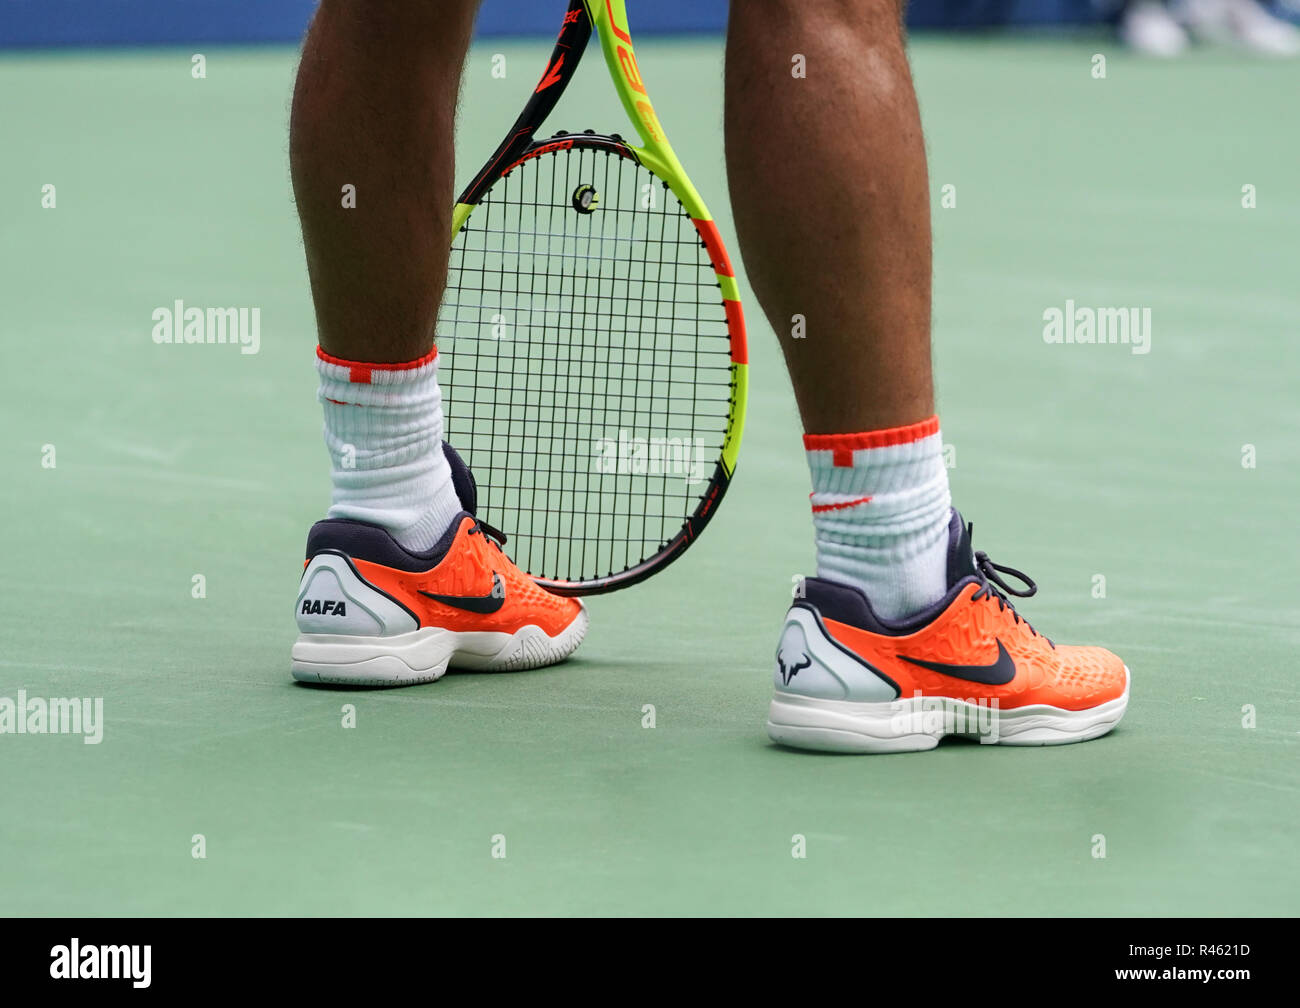 timeless design 18051 a364c New York, NY - September 2, 2018 Sneakers by Nike on Rafael Nadal of Spain  during US Open 2018 4th round match against Nikoloz Basilashvili of Geprgia  at ...